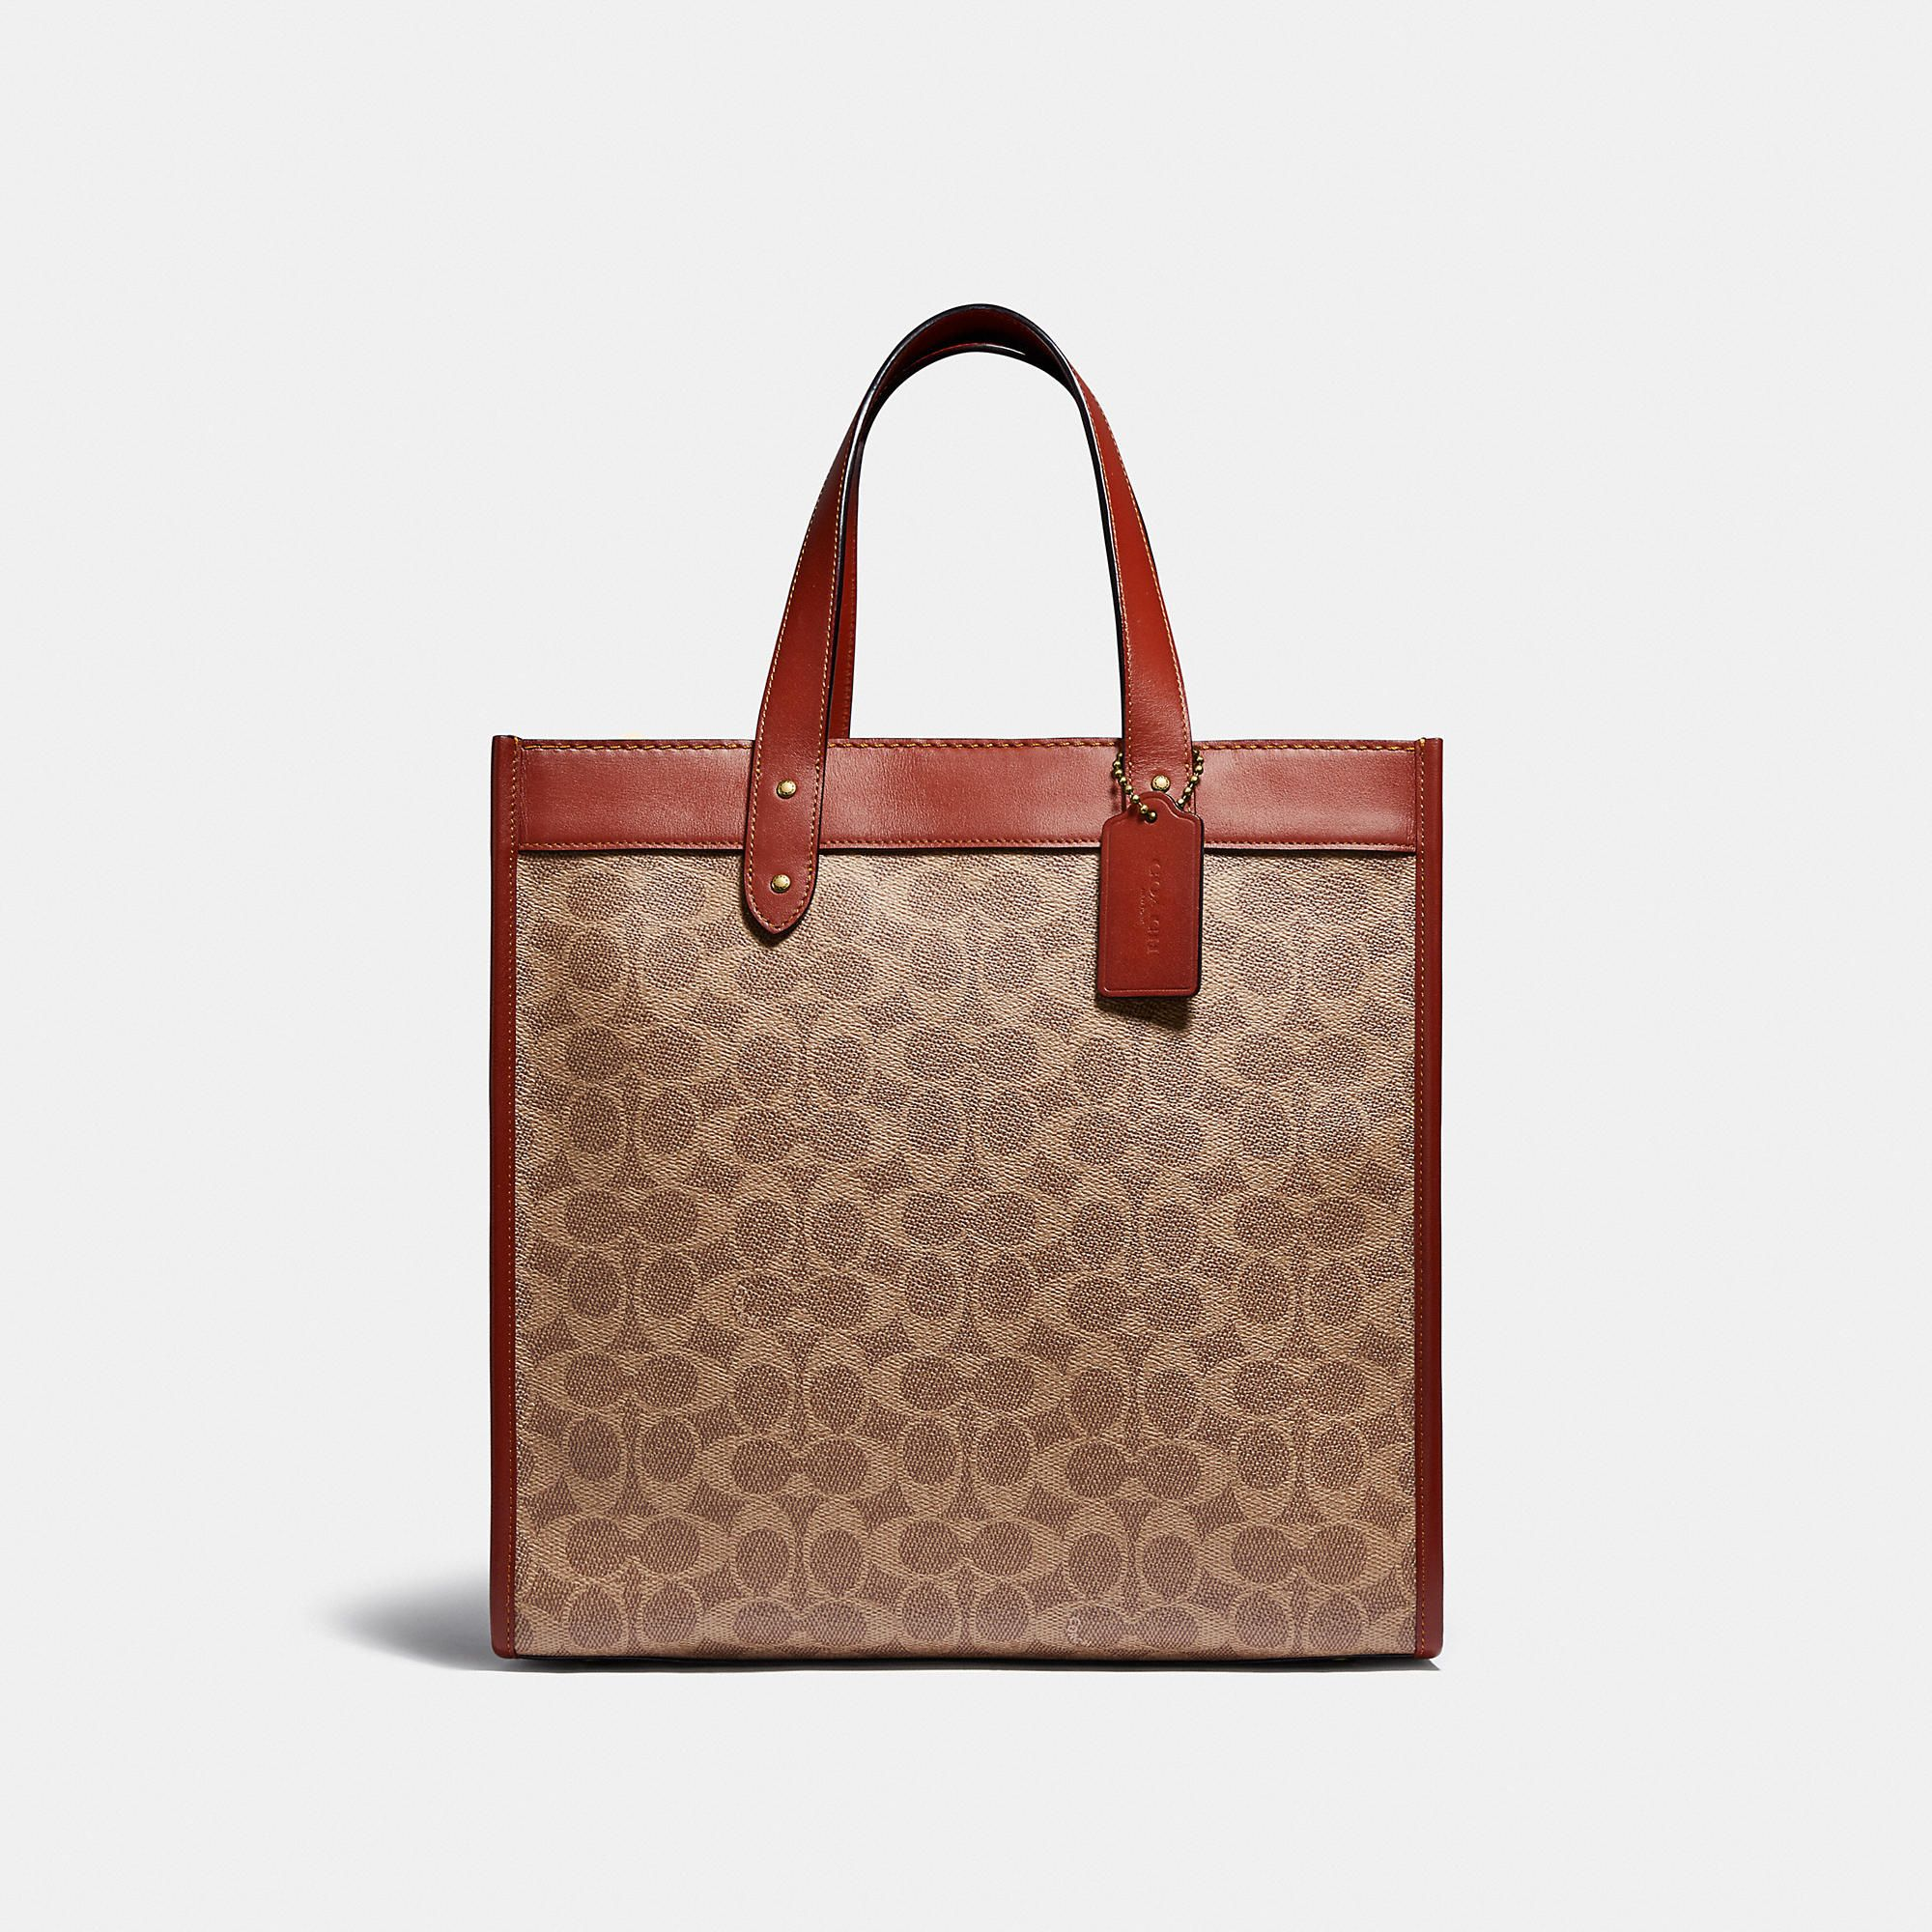 Field Tote In Signature Canvas With Horse And Carriage Print Signature Canvas Tote Coach Tote Bags